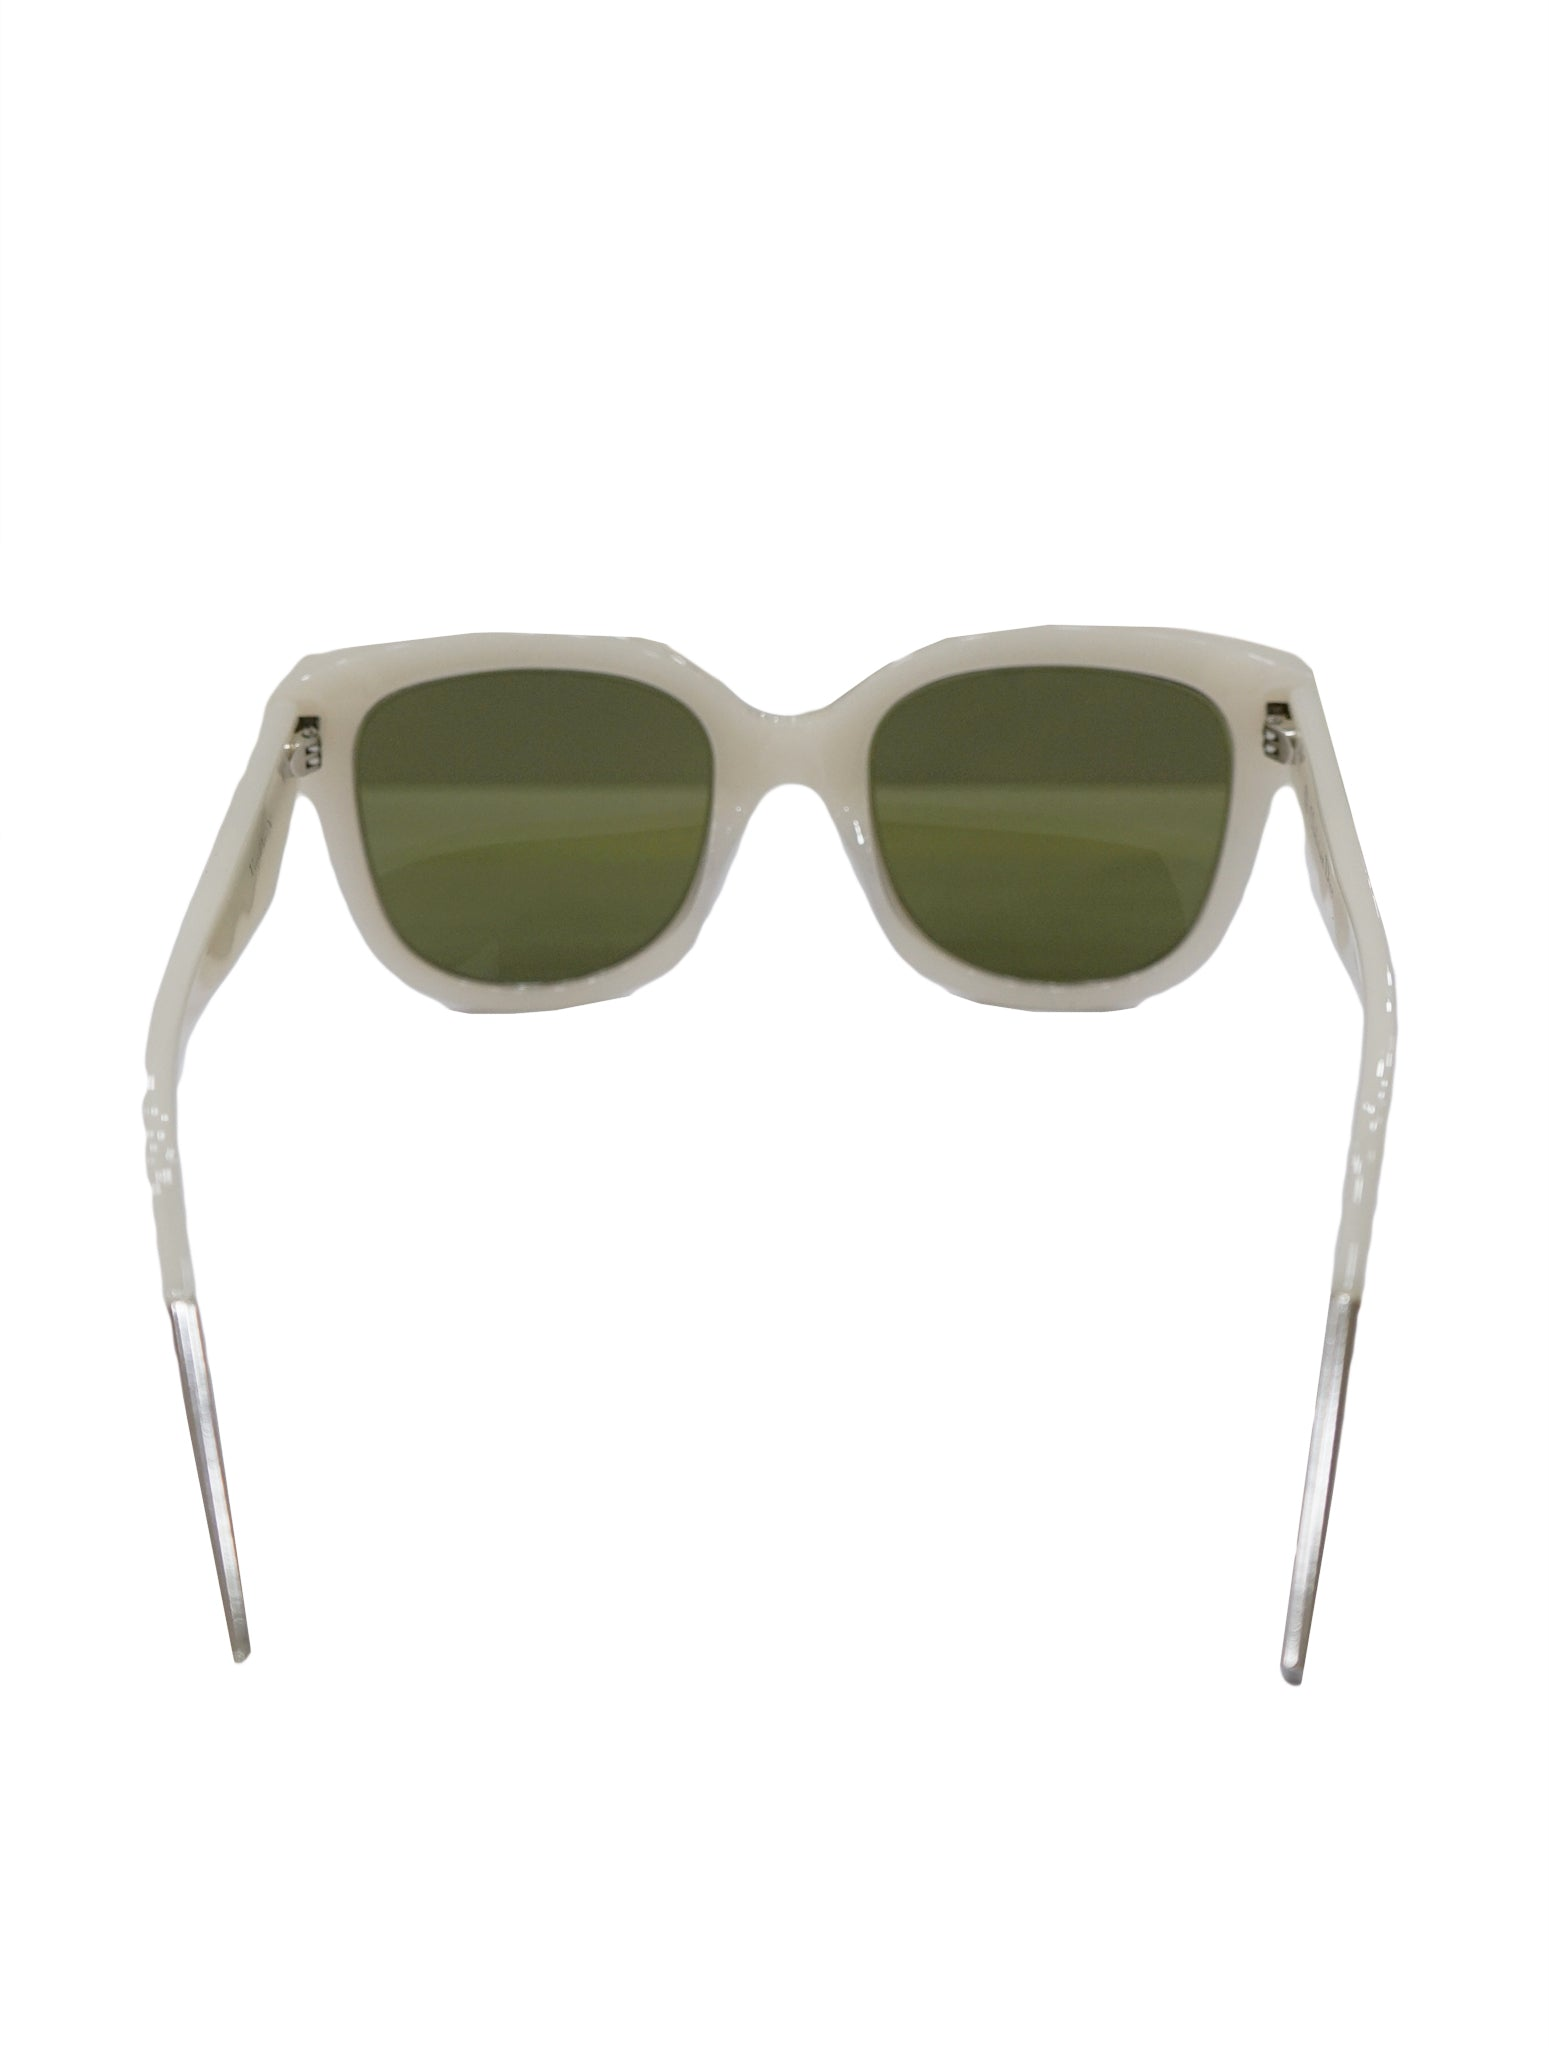 WHITE VERYDIOR 1N 6MAR SUNGLASSES